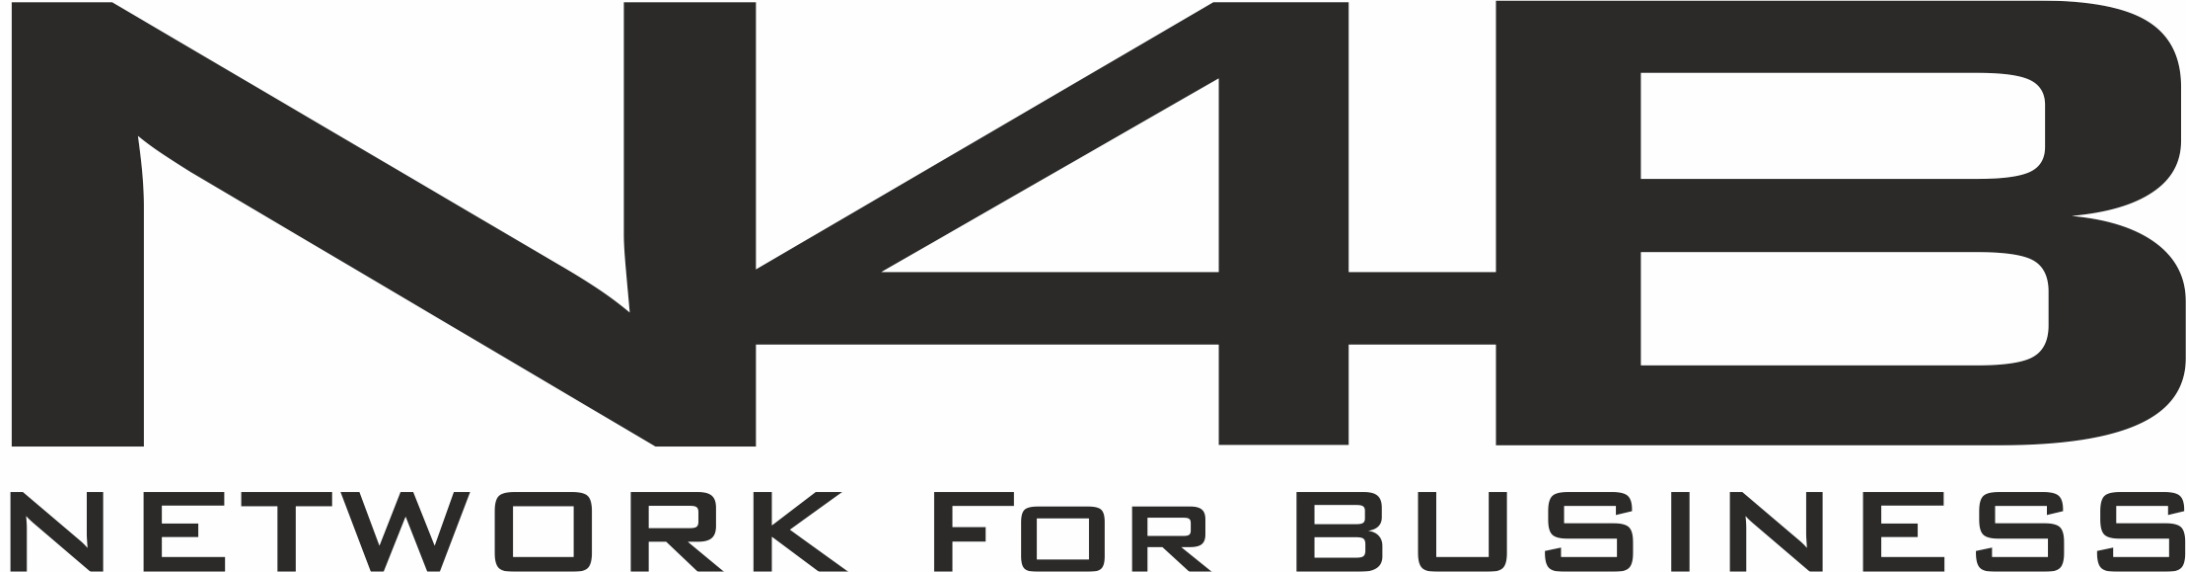 network4business